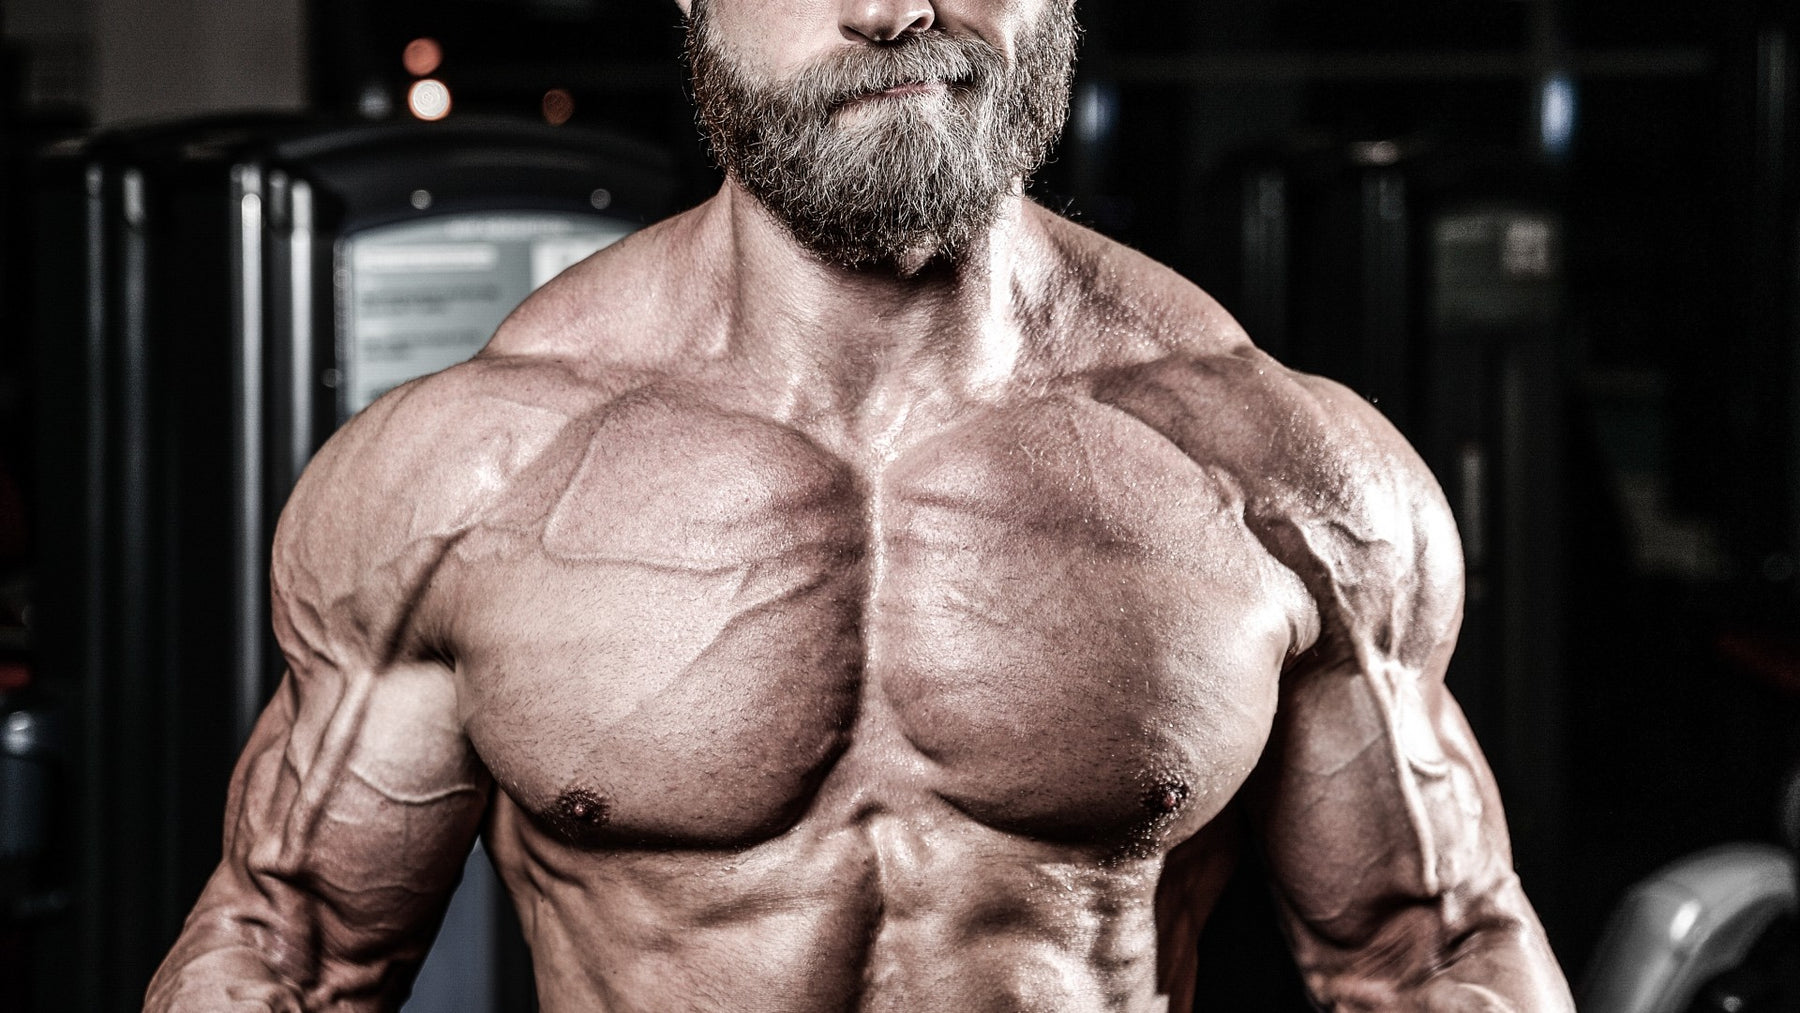 How to Gain Muscle Mass: 5 Must-Have Training Principles